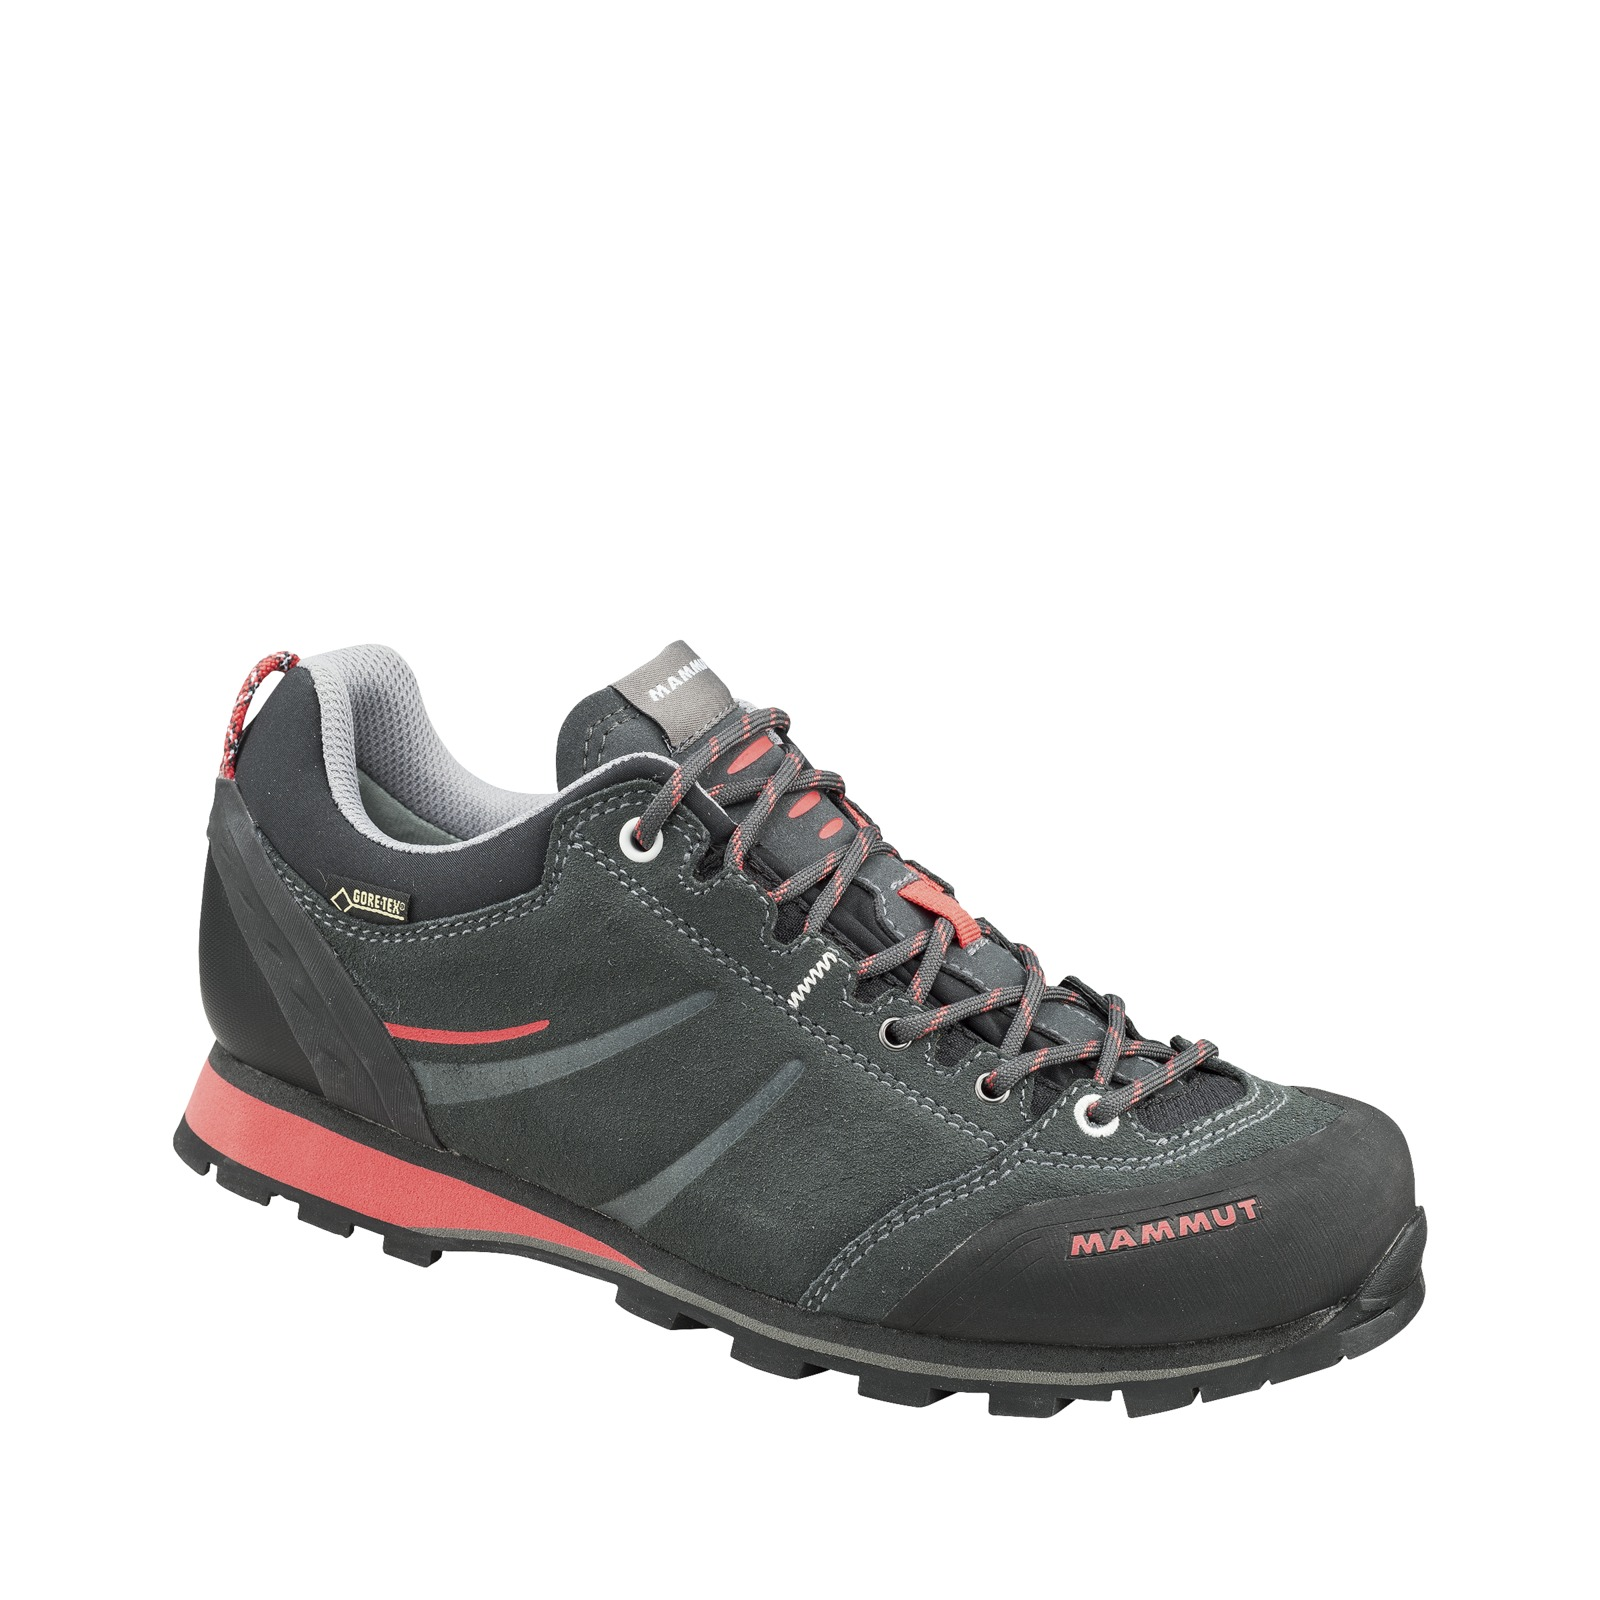 MAMMUT WALL GUIDE LOW GTX® WOMEN